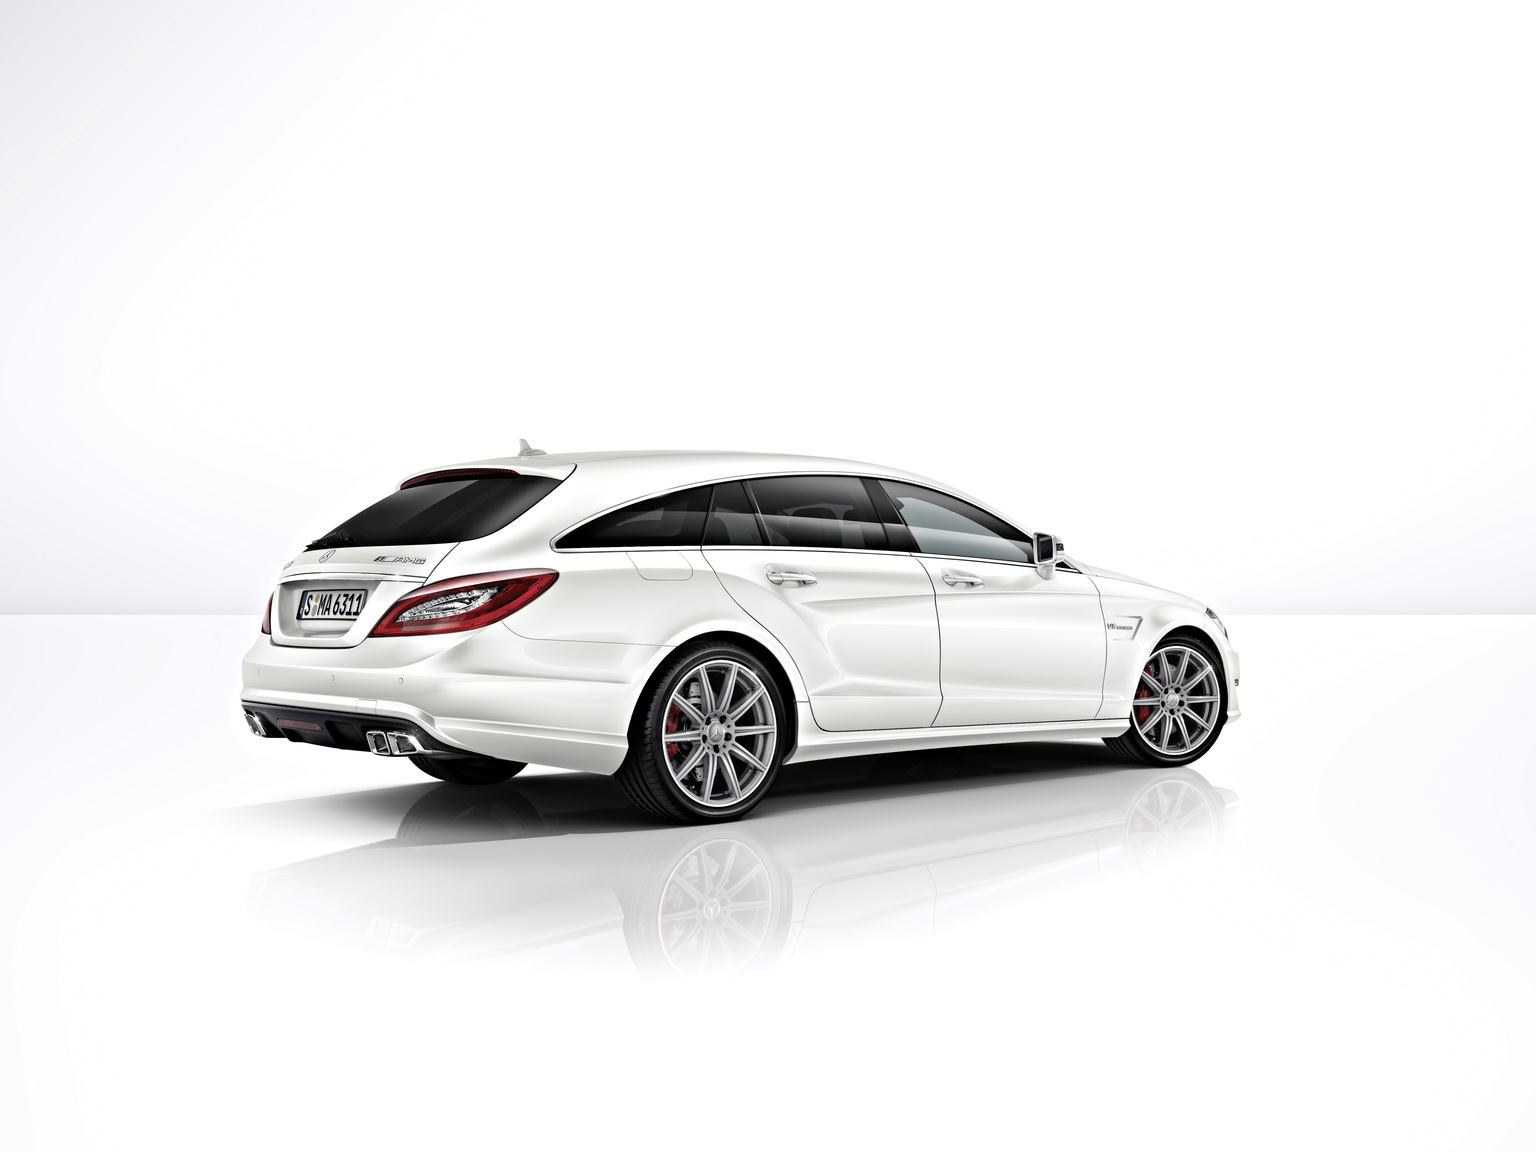 2013 mercedes benz cls 63 amg 4matic shooting brake review. Black Bedroom Furniture Sets. Home Design Ideas